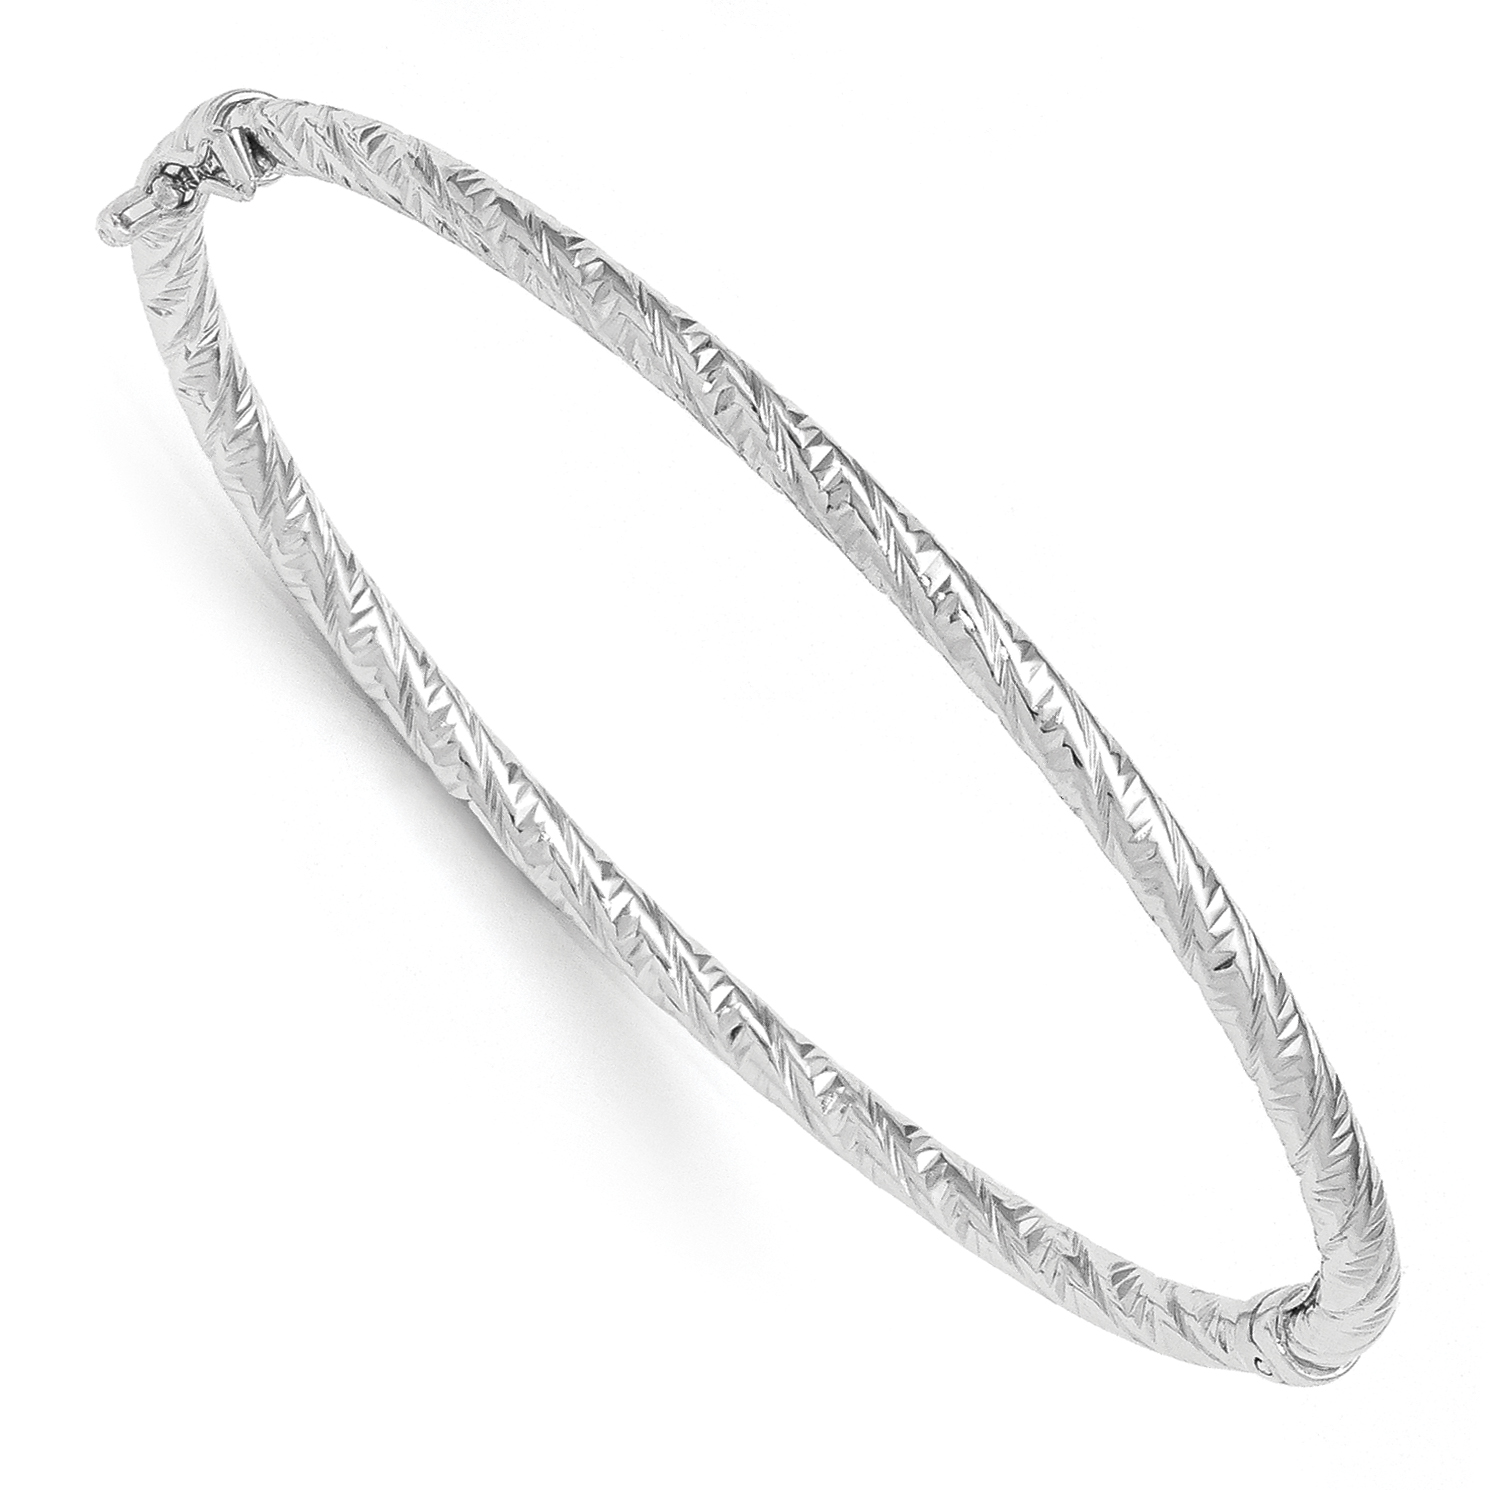 Leslie's 14k White Gold Polished and Textured Hinged Bangle Bracelet by